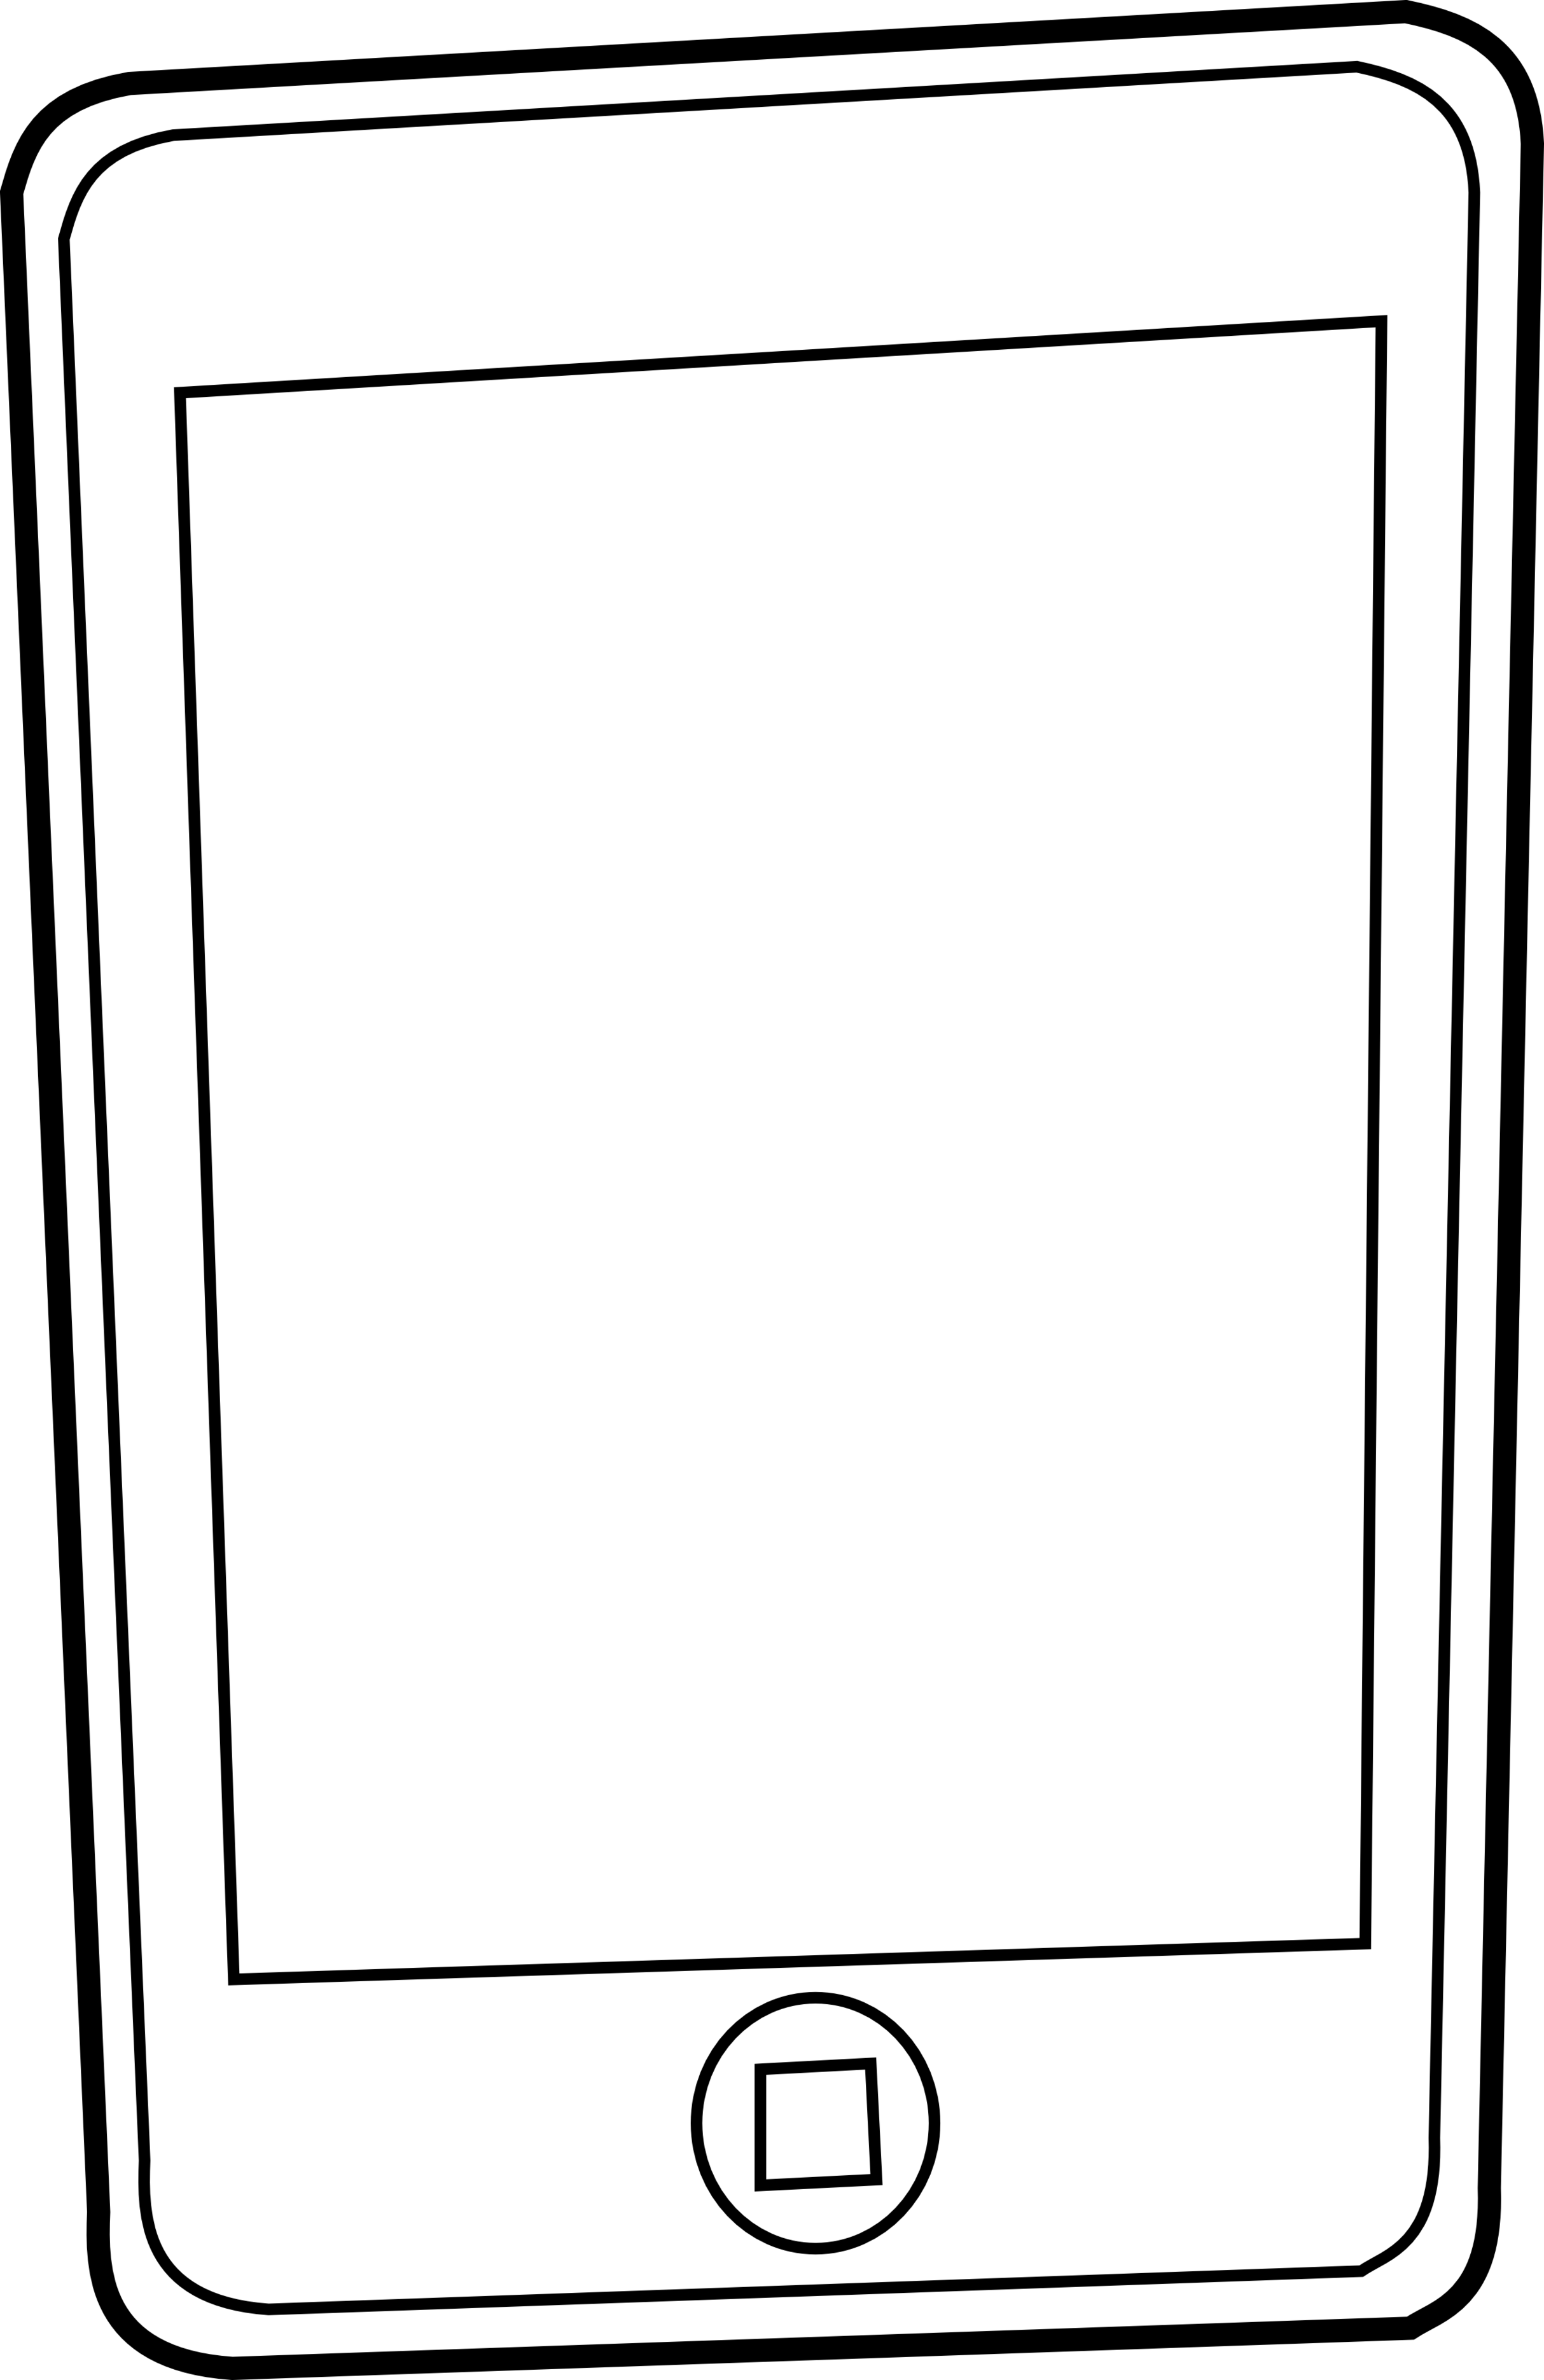 Cell phone mobile phone clipart black and white clipart free.